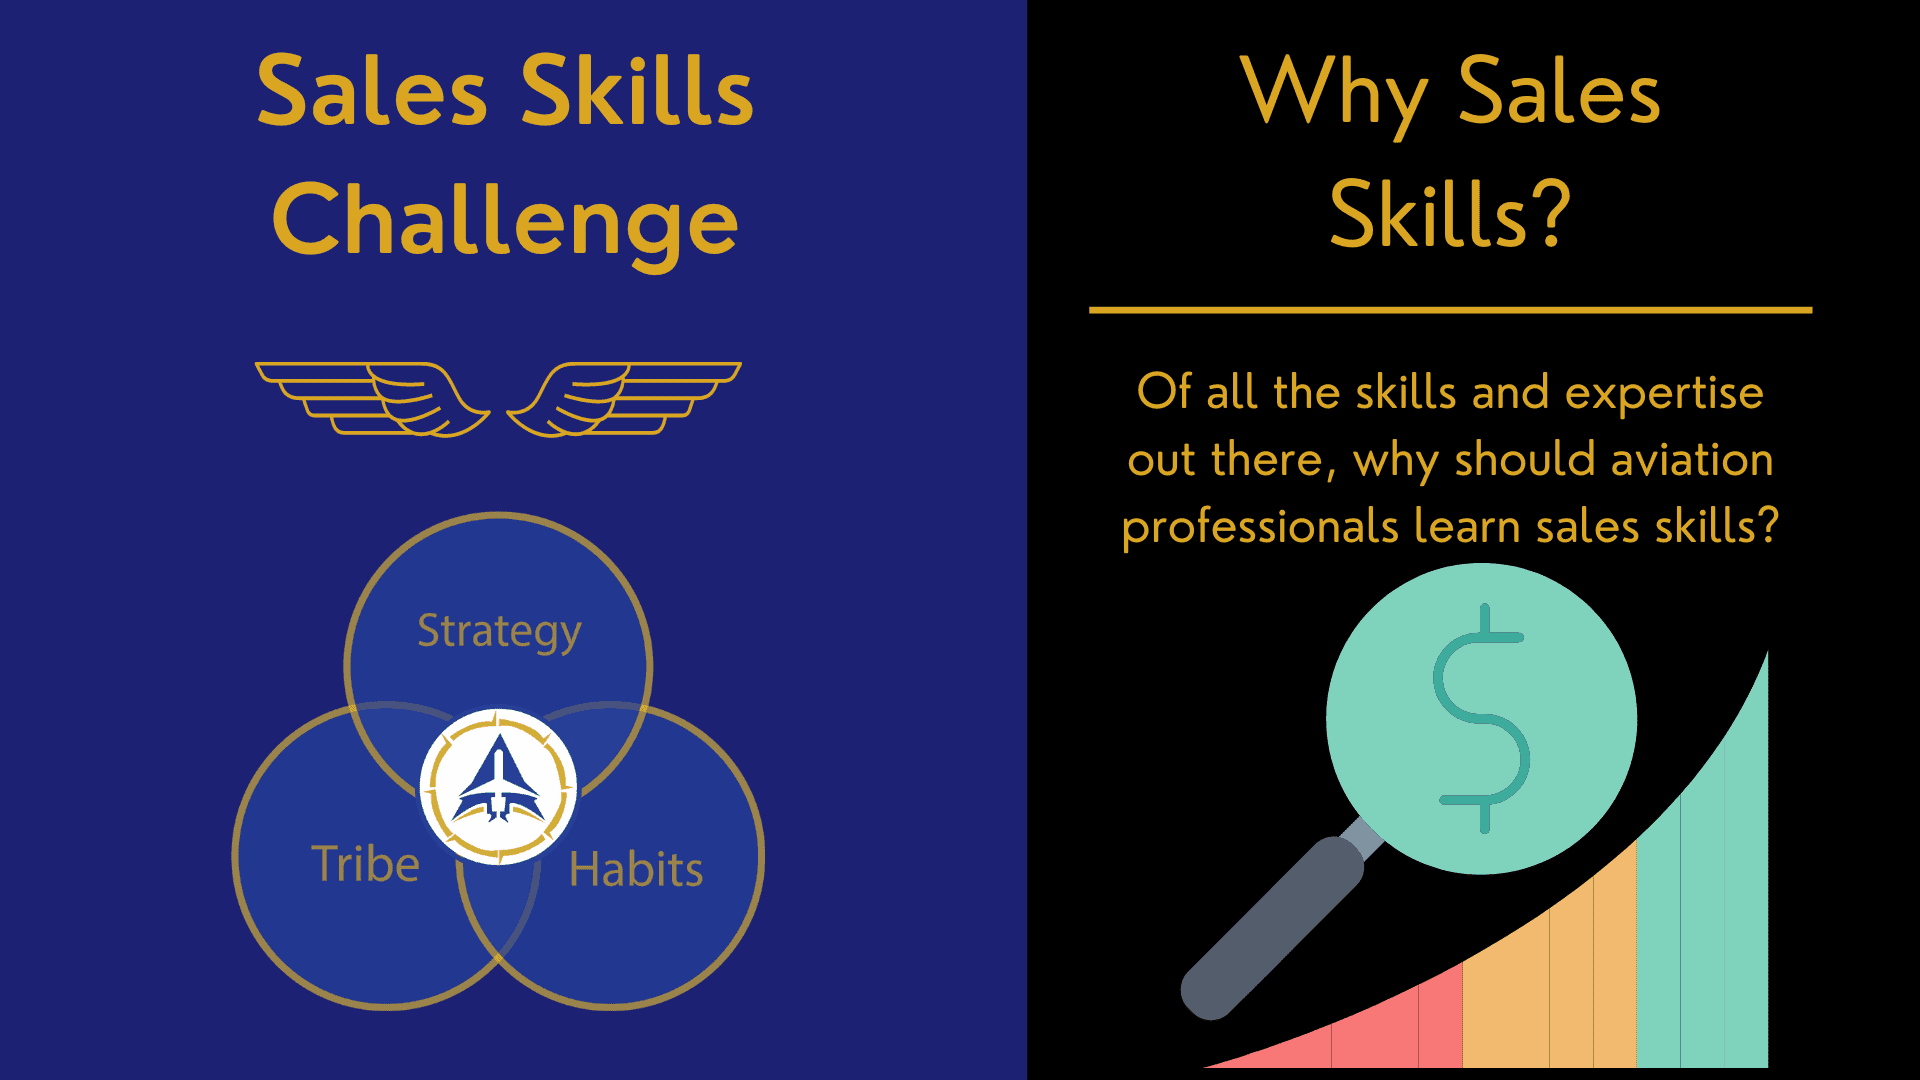 Why do Aviation Professionals Need Sales Skills?